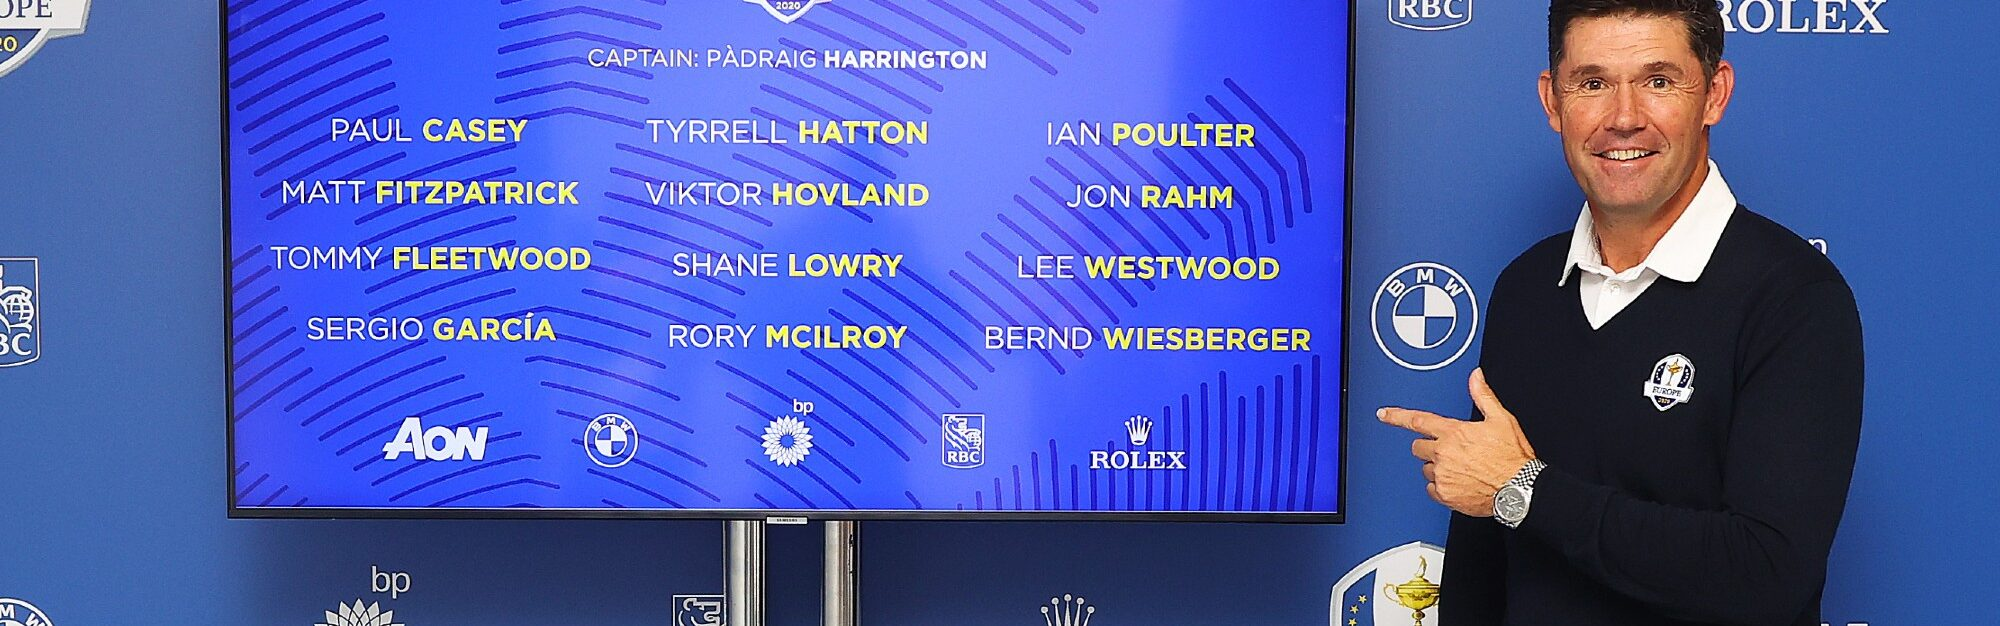 Ryder Cup wildcards named: Did Captain Harrington make the right choices?